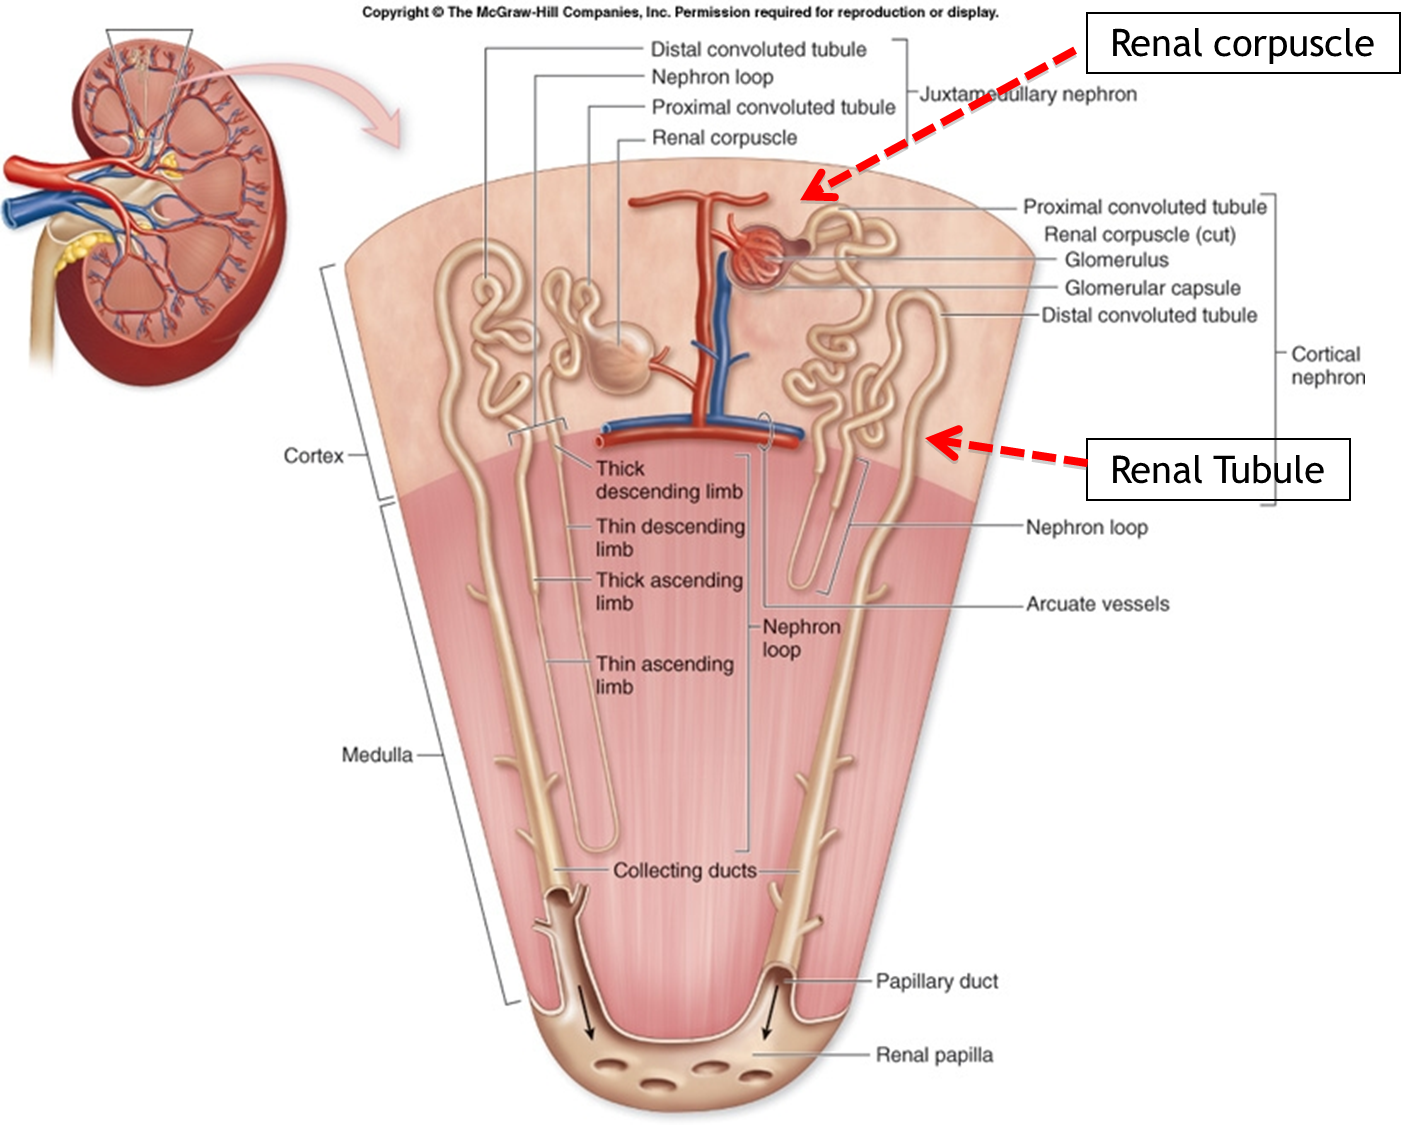 Human Anatomy Diagram Kidney Internal Organs - Health, Medicine and ...